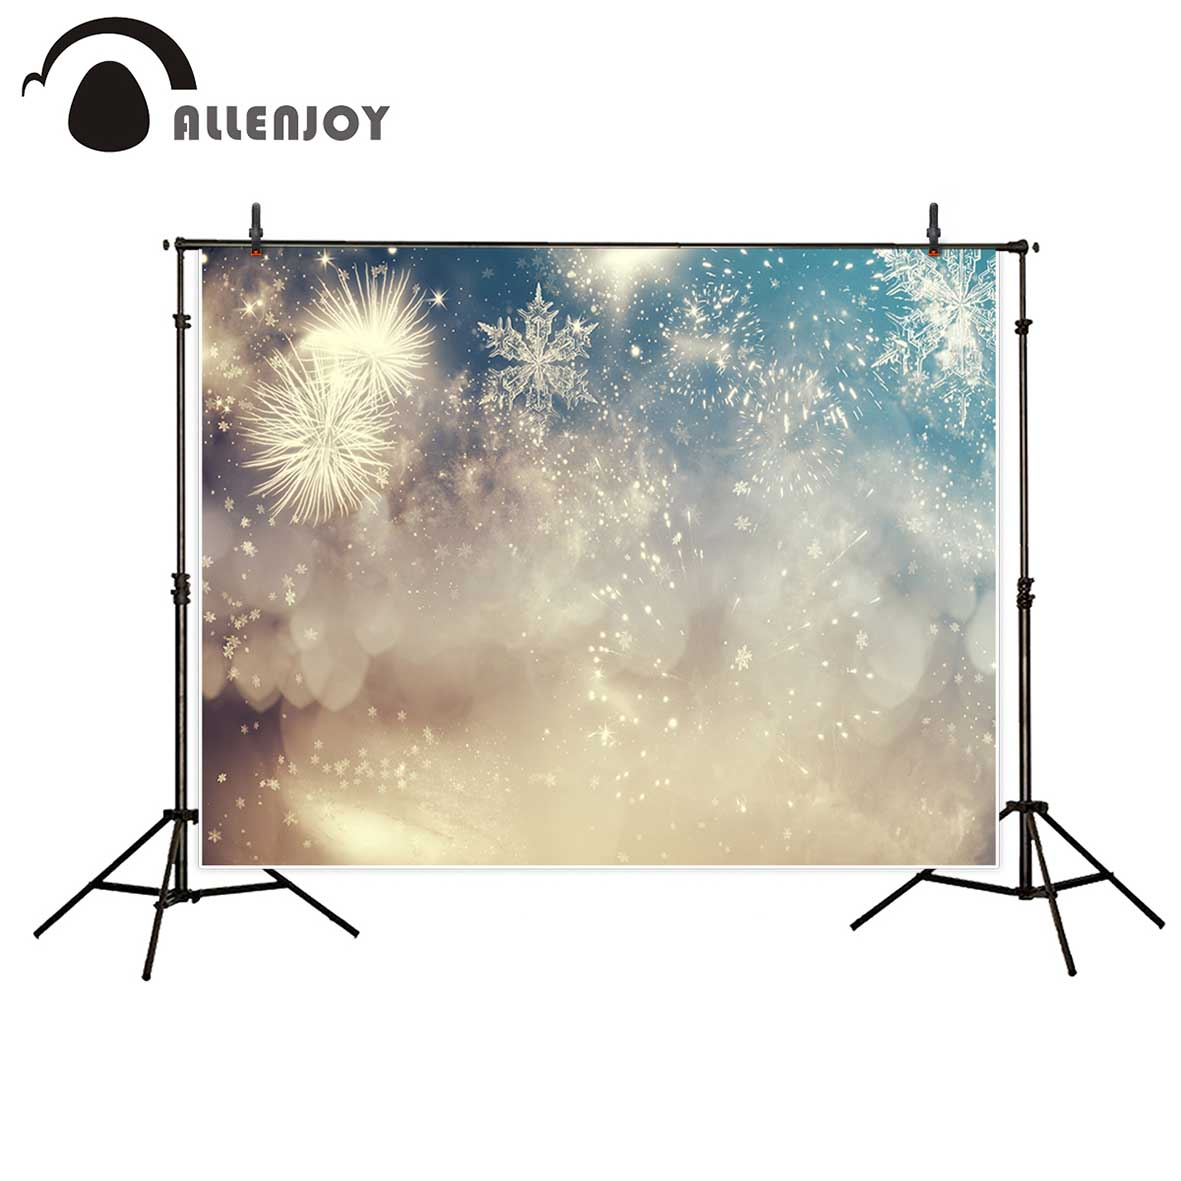 Allenjoy photography backdrop snowflake bokeh Christmas party professional background photobooth photographic studio